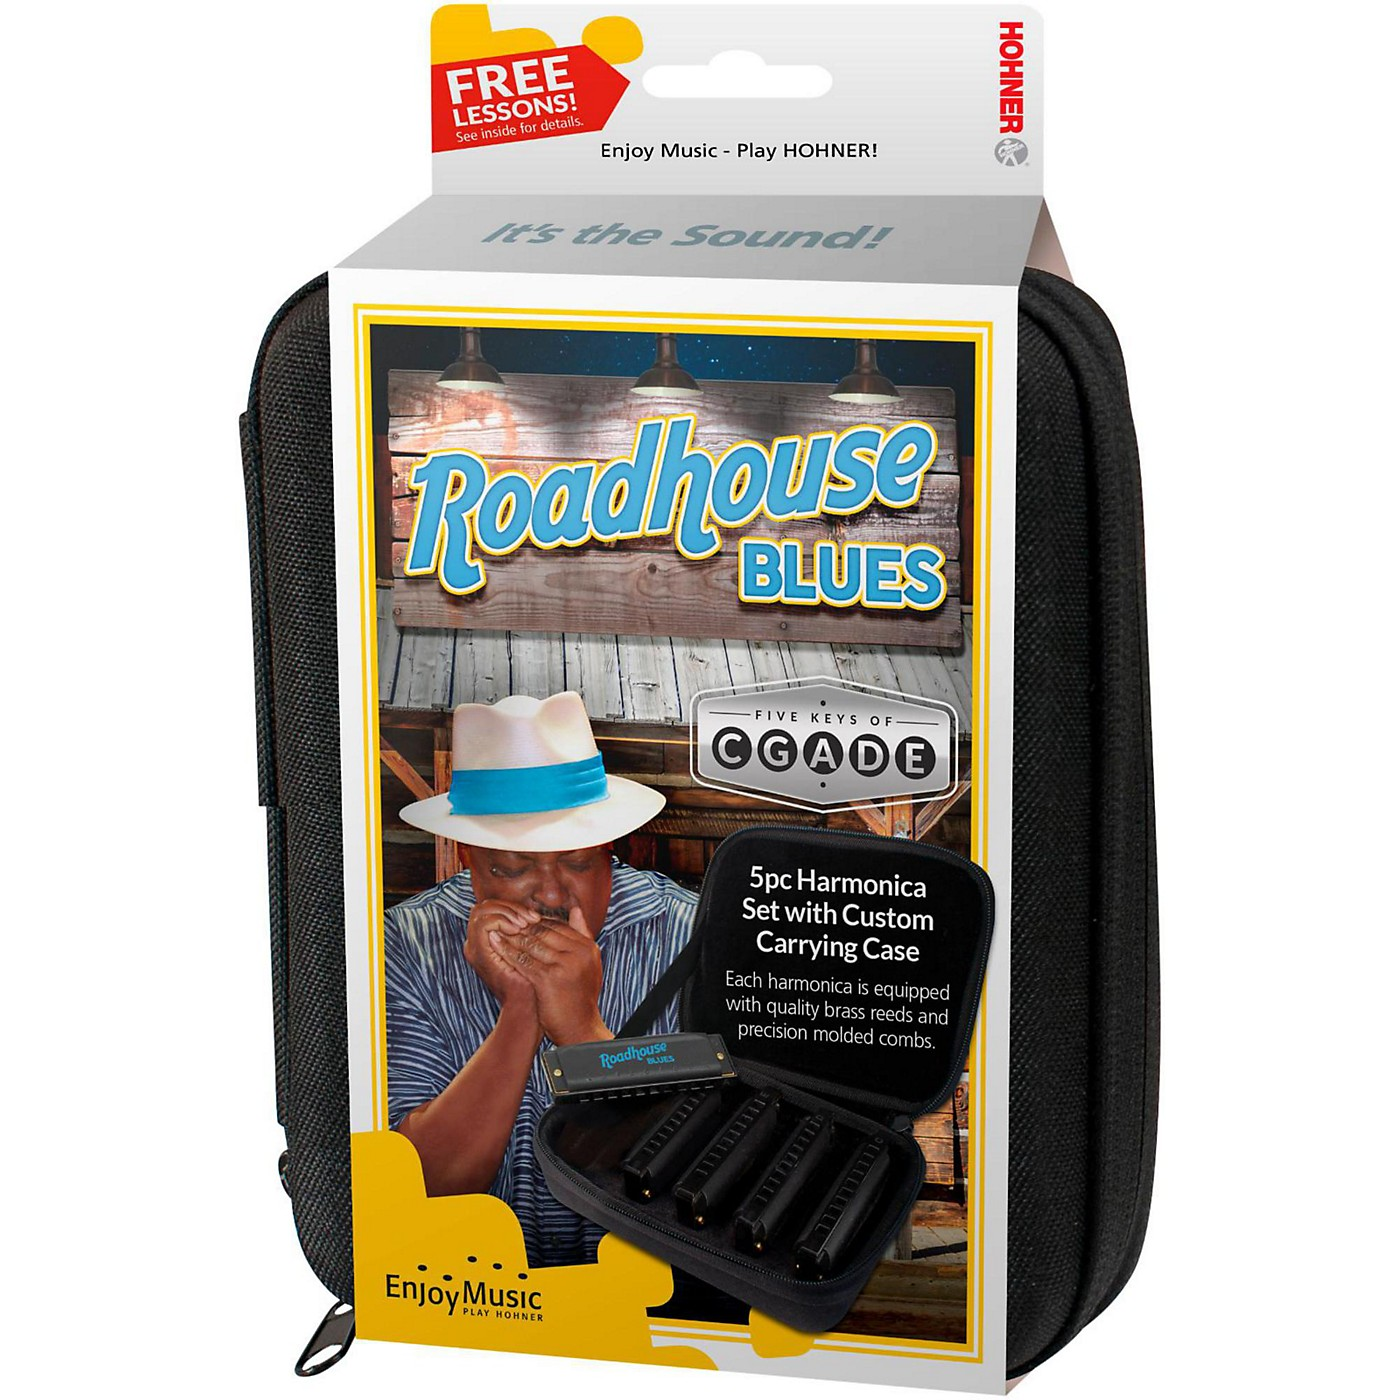 Hohner Roadhouse Blues Harmonicas - 5-Pack (Keys of G, A, C, D, and E)  in Custom Case thumbnail